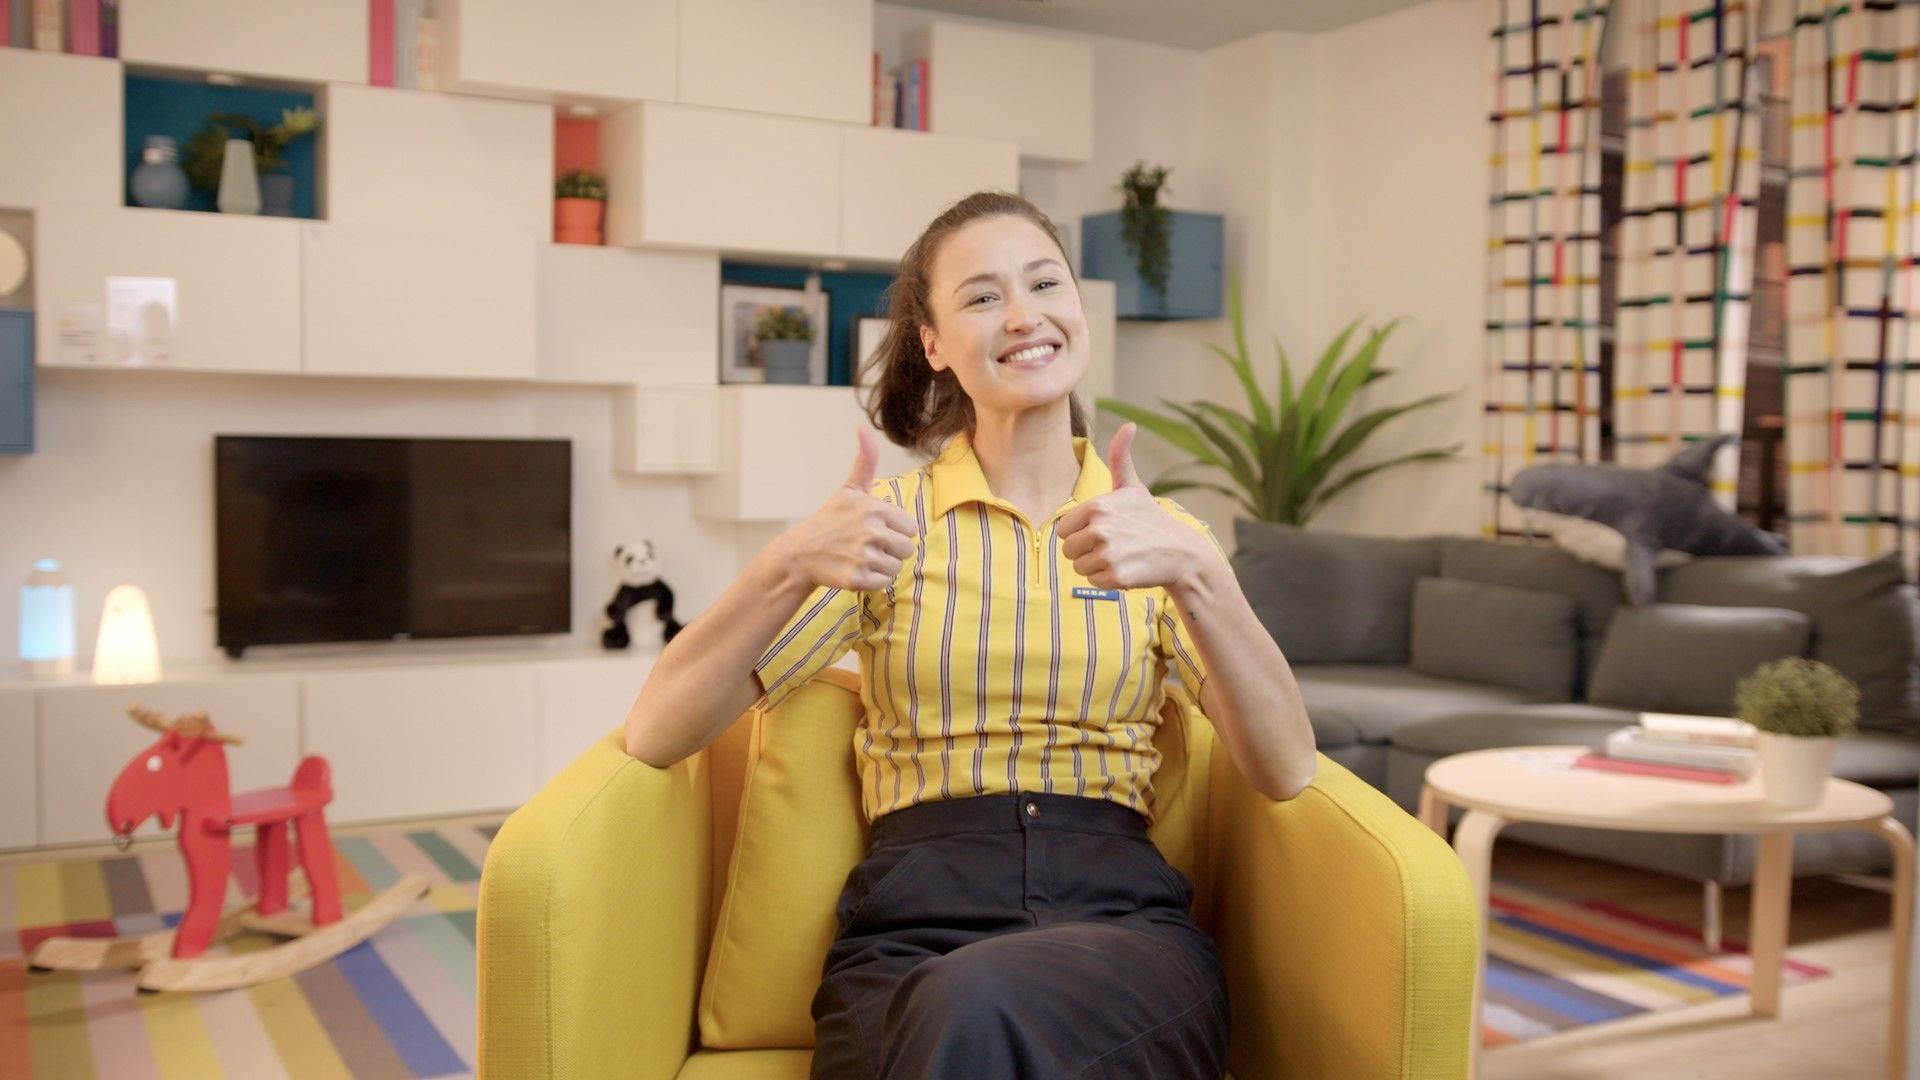 IKEA launches free online Swedish lessons for children during lockdown